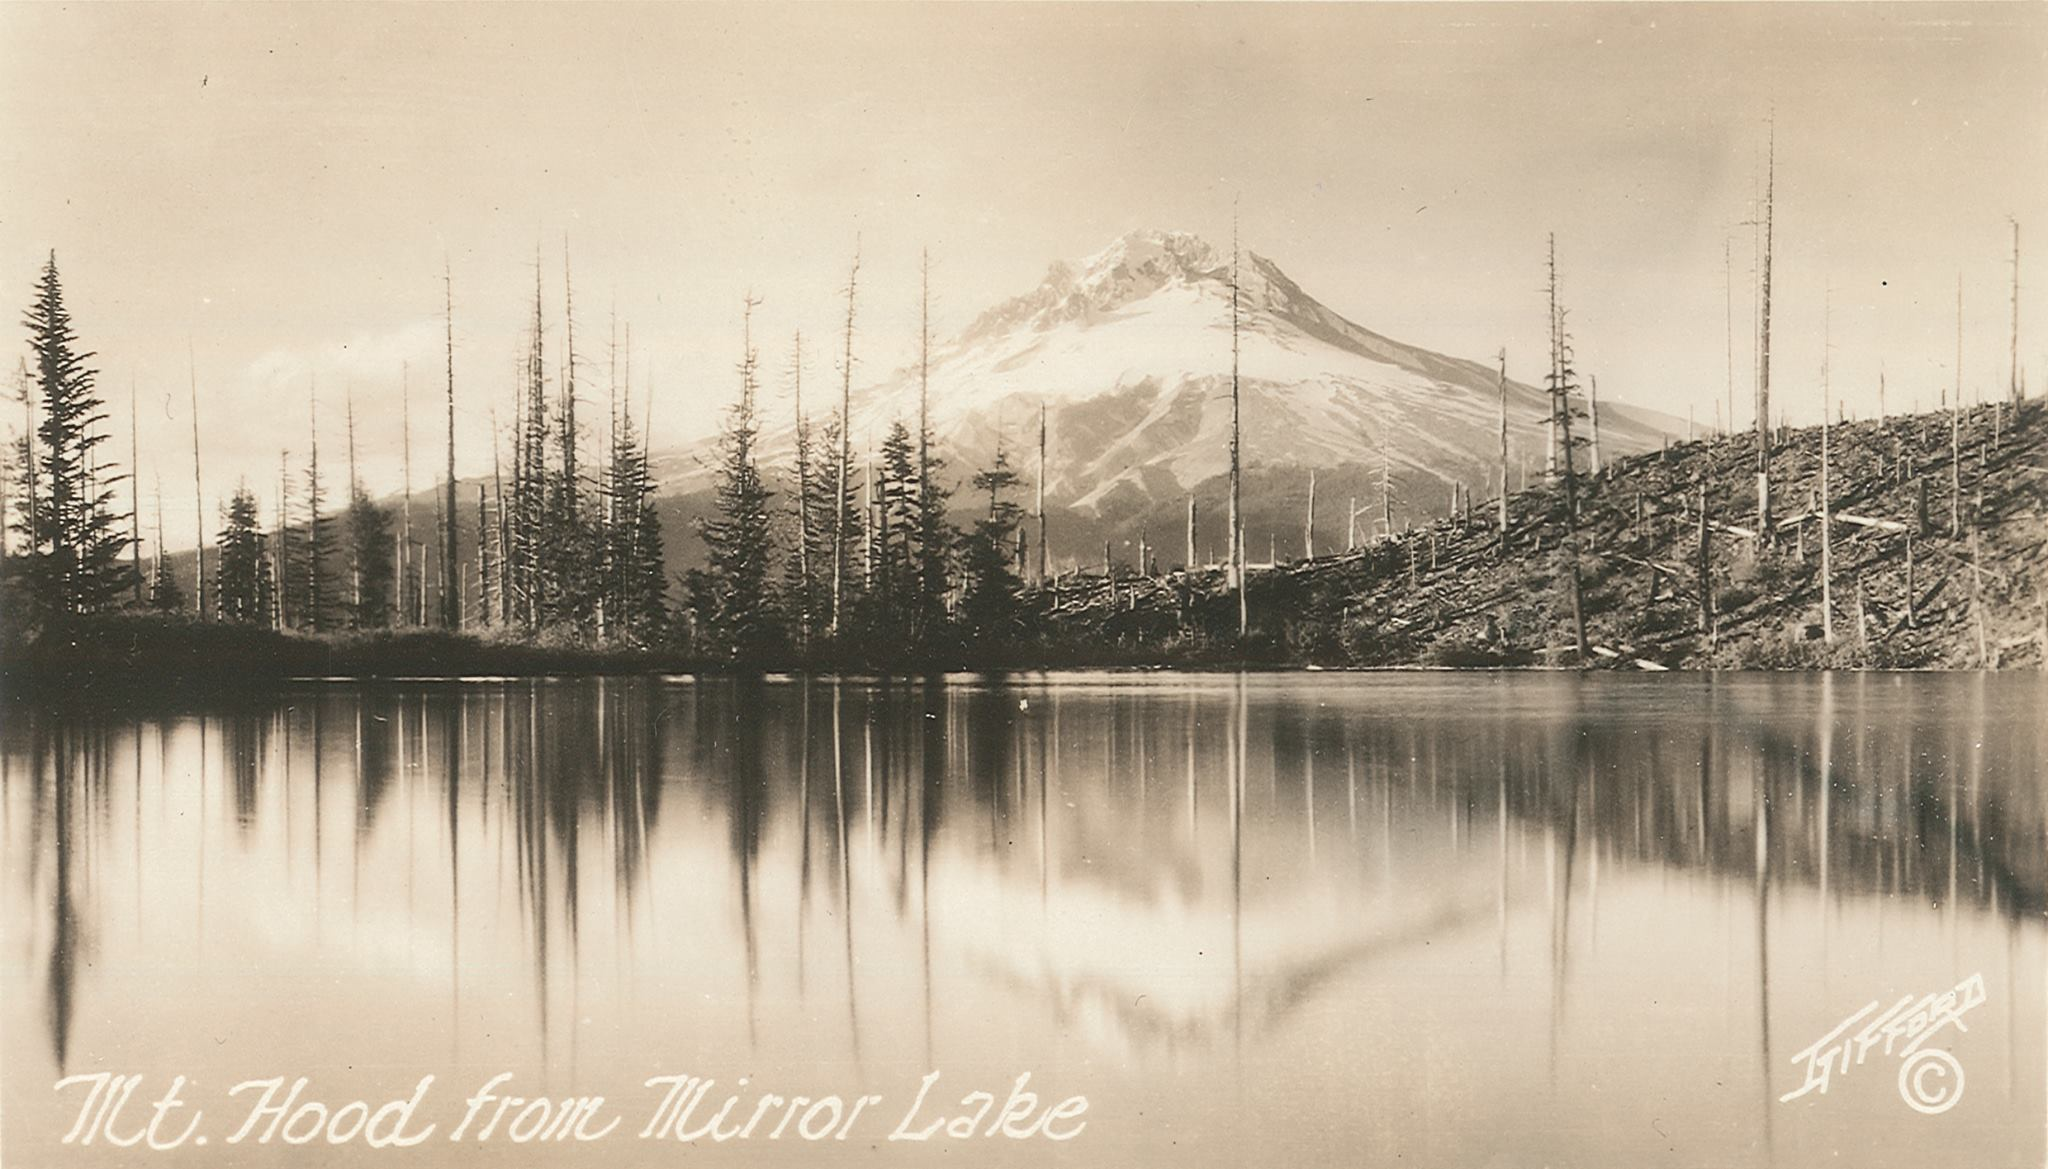 Historic photo of Mirror Lake